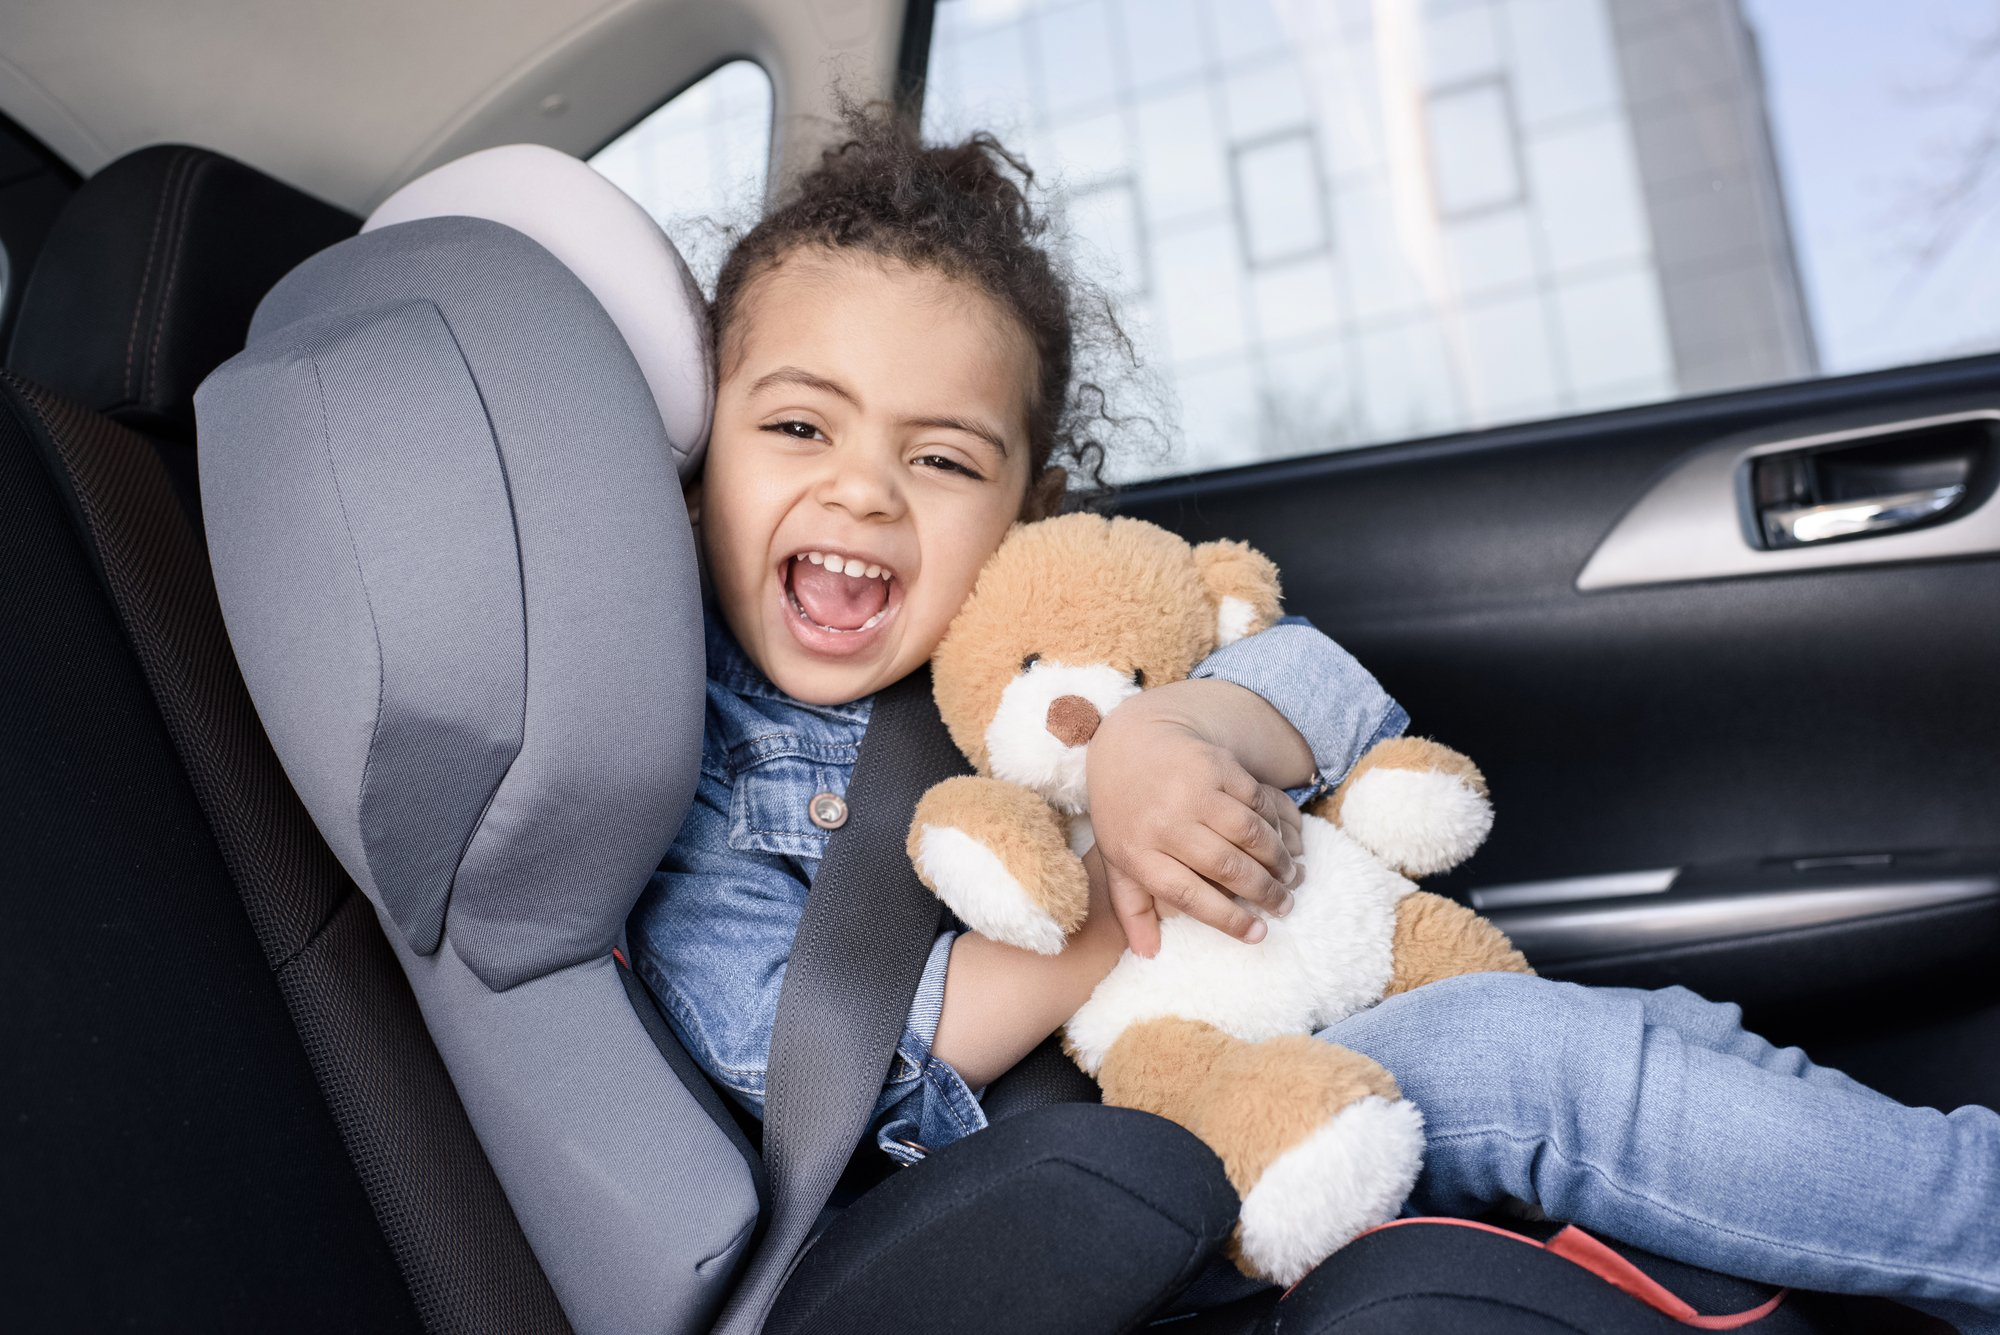 Little girl with toy in car